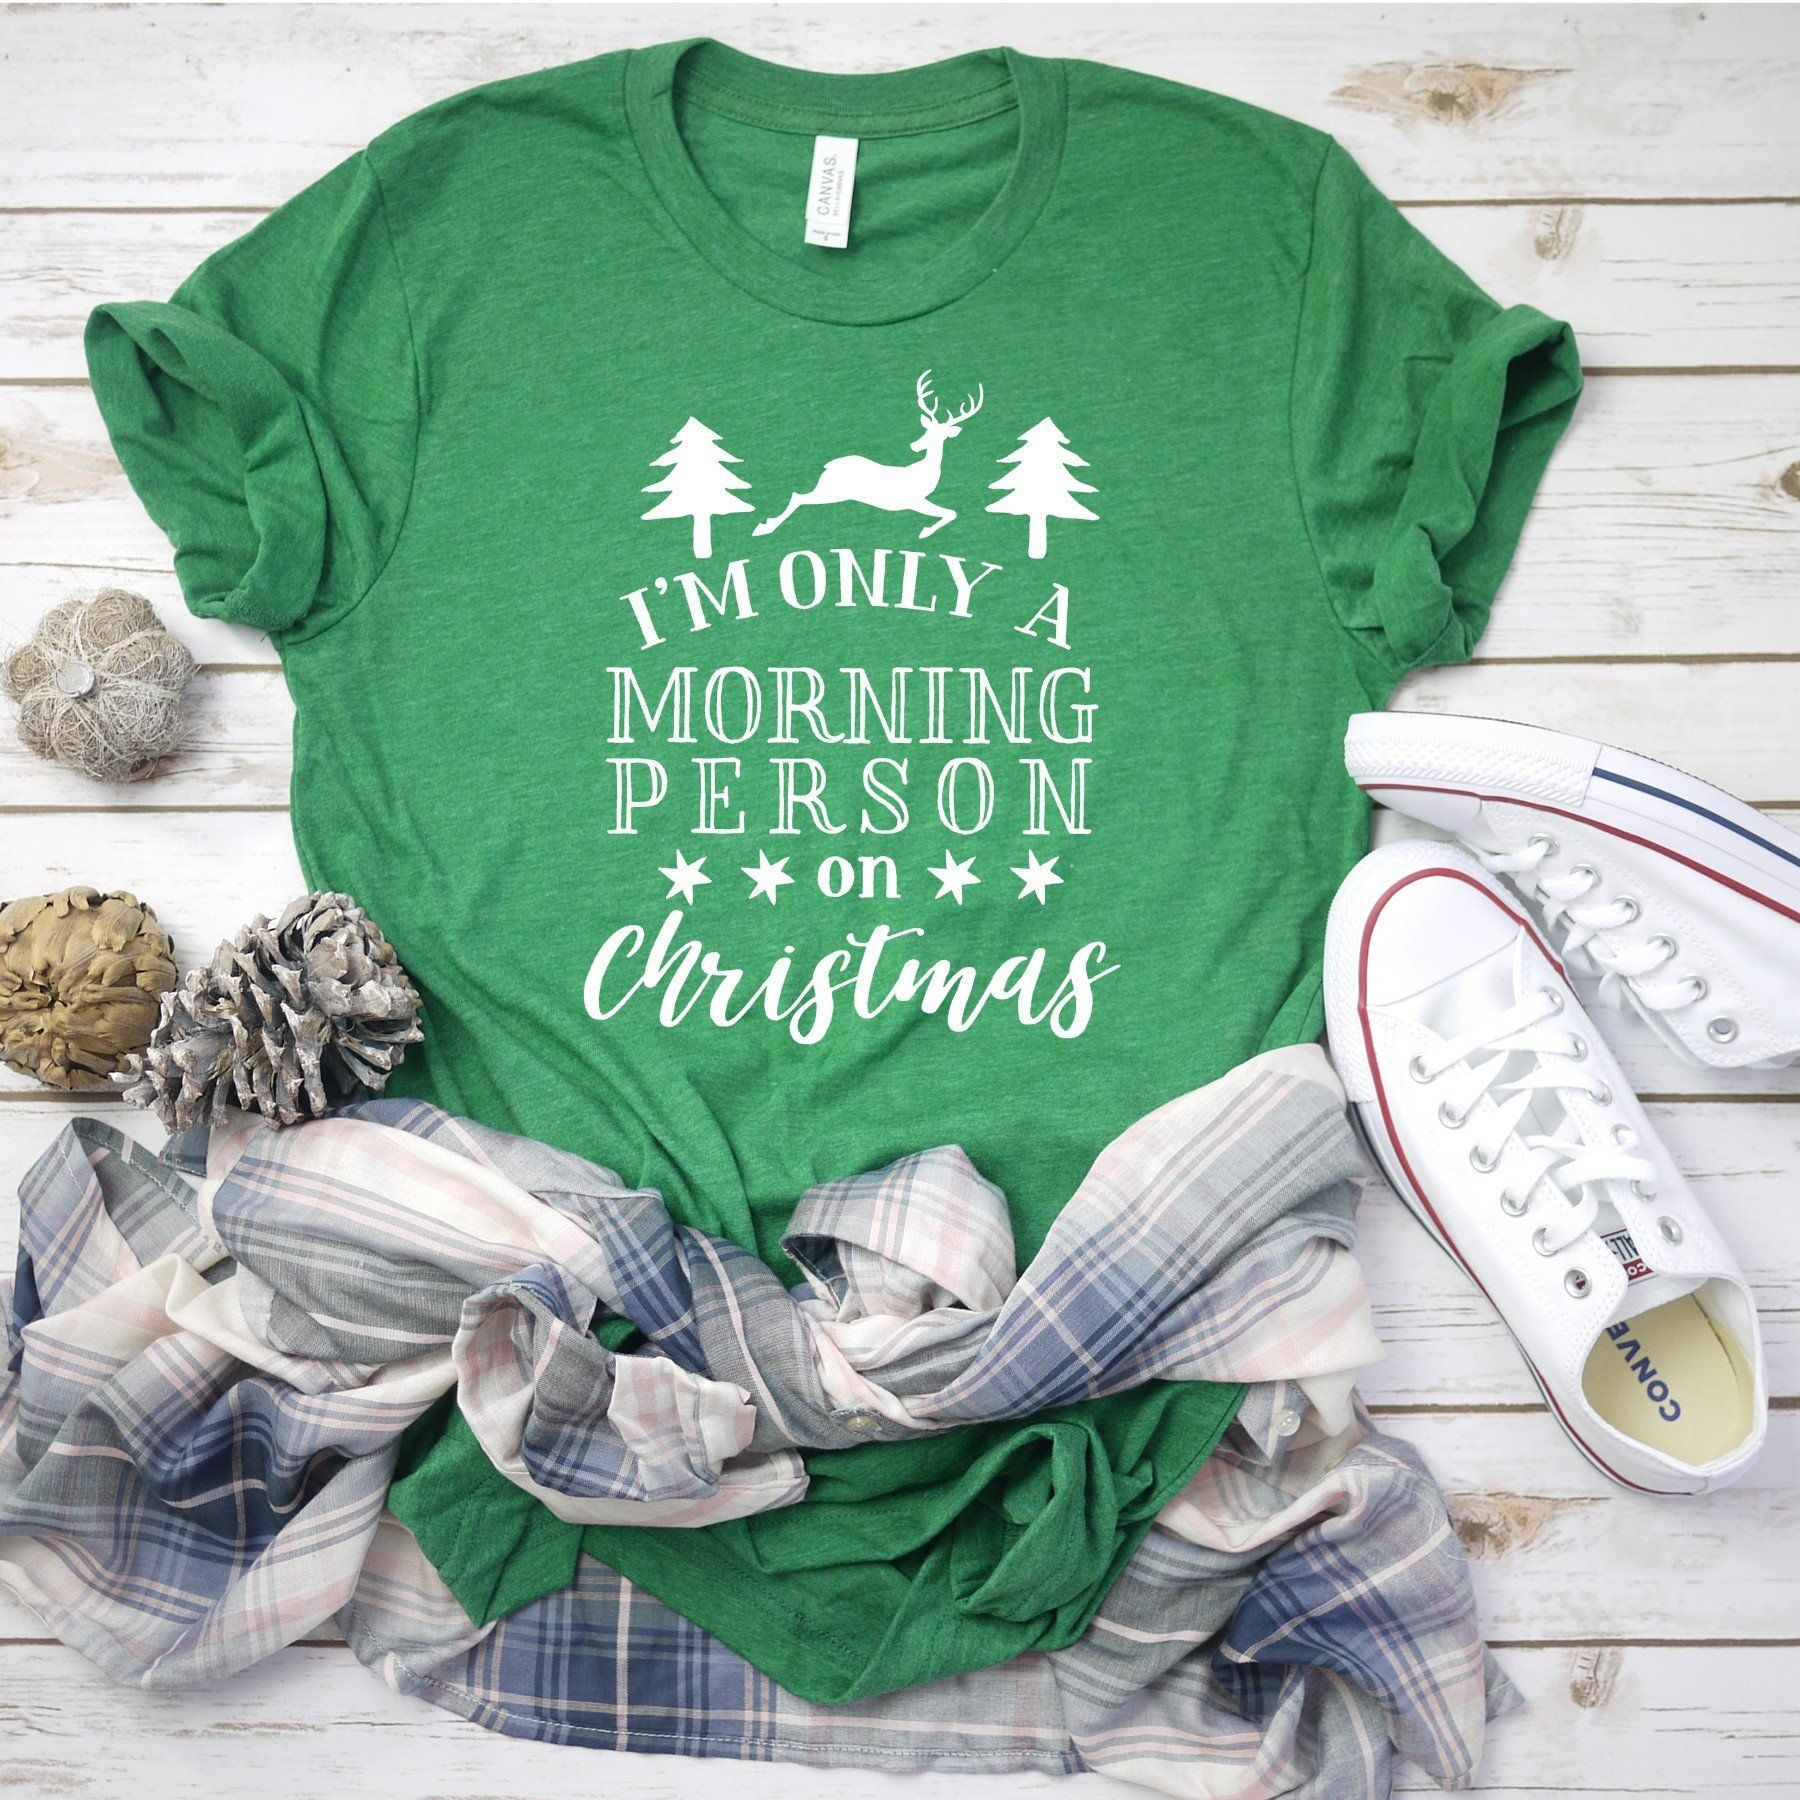 60fcd3399 Im Only a Morning Person on Christmas, Funny Christmas Shirts, December  25th Tee Christmas Tees for Women, Christmas Party Shirt, ...